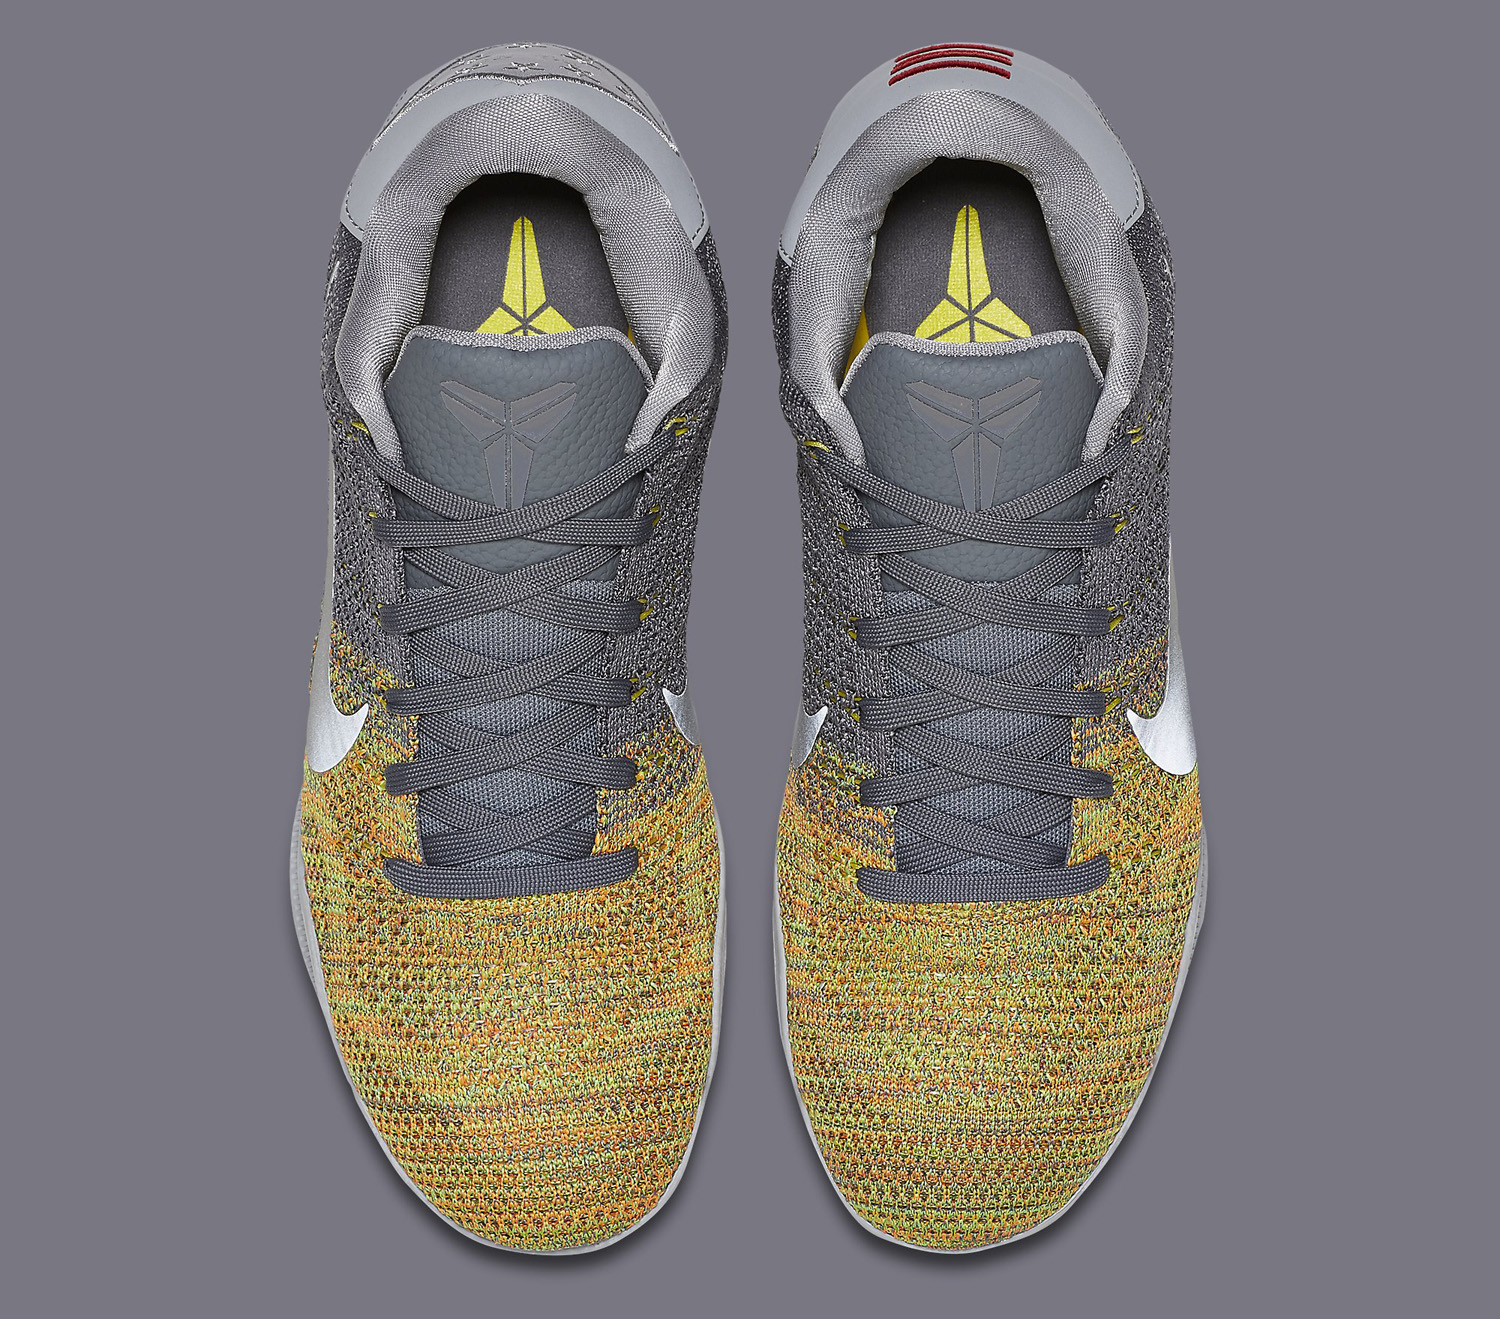 42a73bcf66d6 Nike Kobe 11 Master of Innovation 822675-037 Top